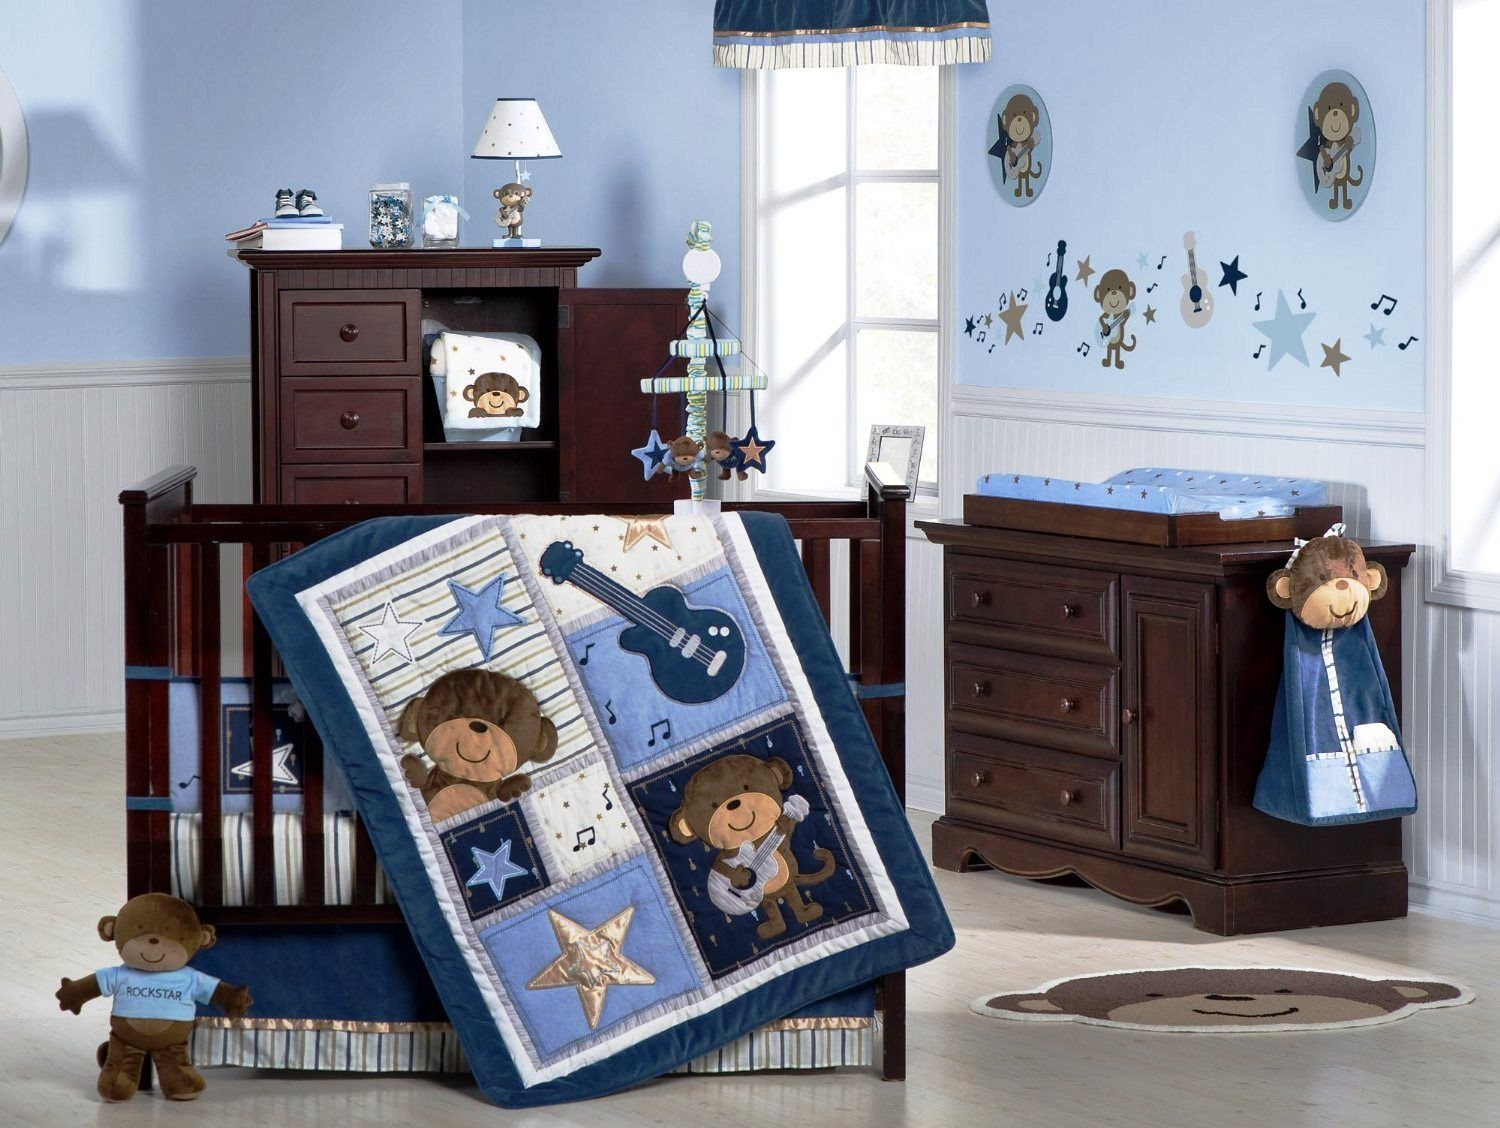 17 Best images about nursery ideas on Pinterest   Deer hunting  Baby boy  camo and Hunting theme nursery. 17 Best images about nursery ideas on Pinterest   Deer hunting